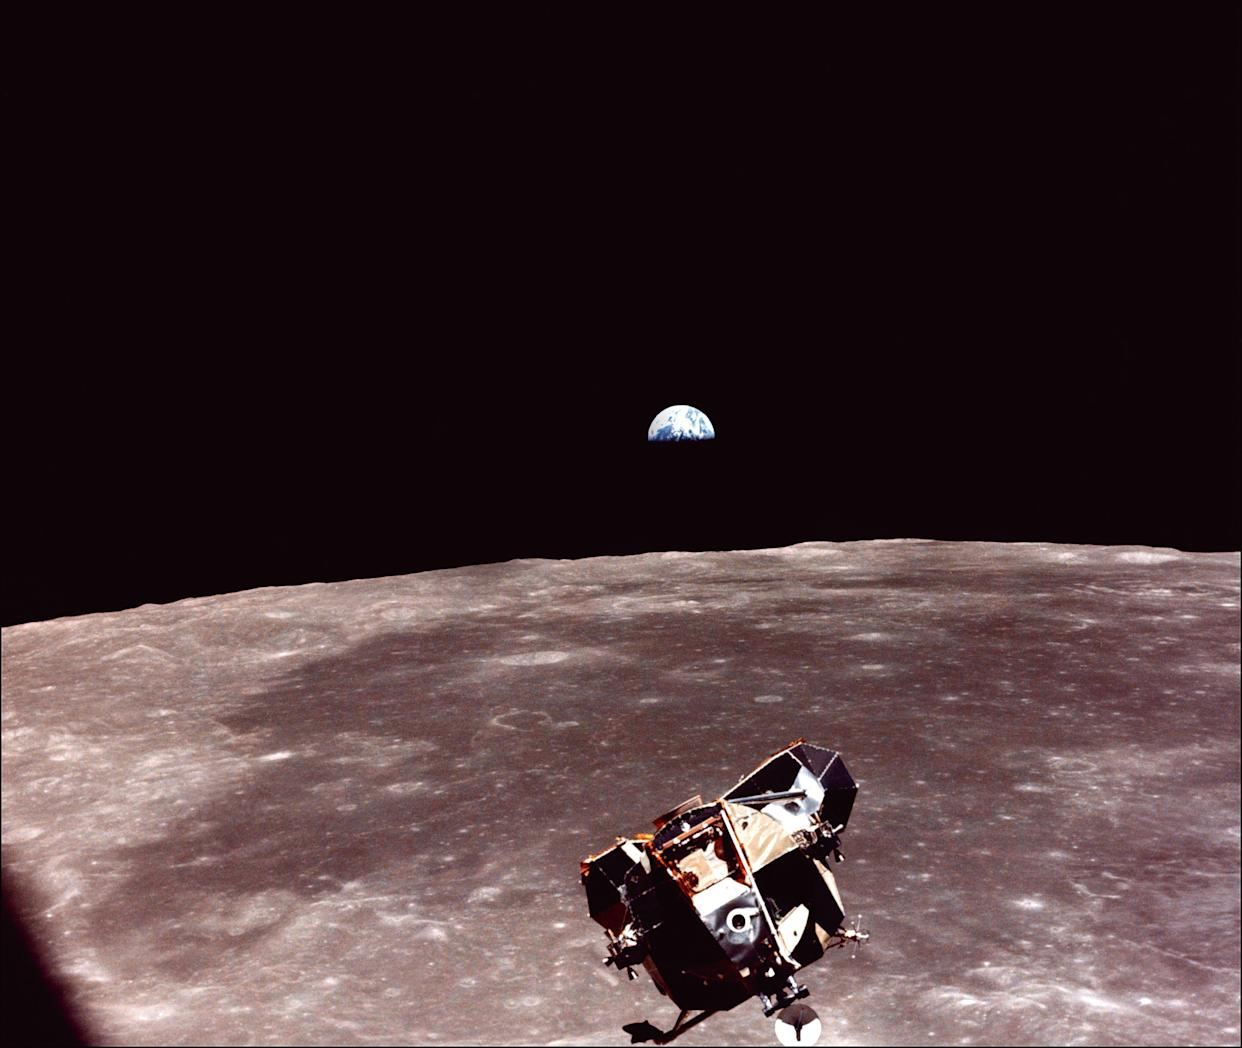 apollo 11 space mission pictures - photo #23